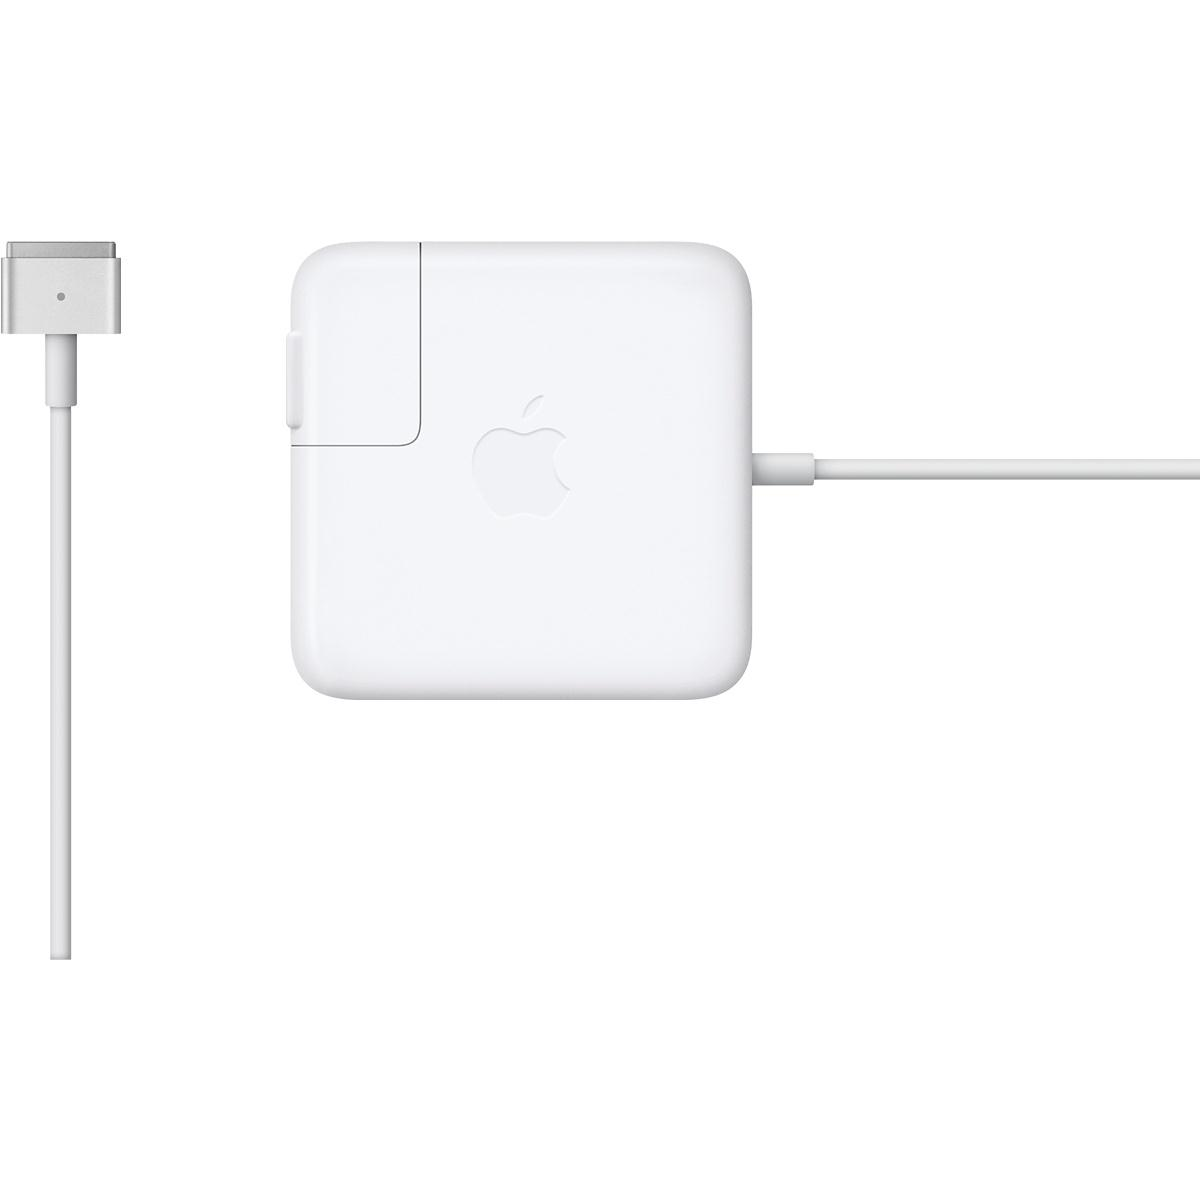 Apple 85W MagSafe 2 Power Adaptor (White) for MacBook Pro with Retina Display